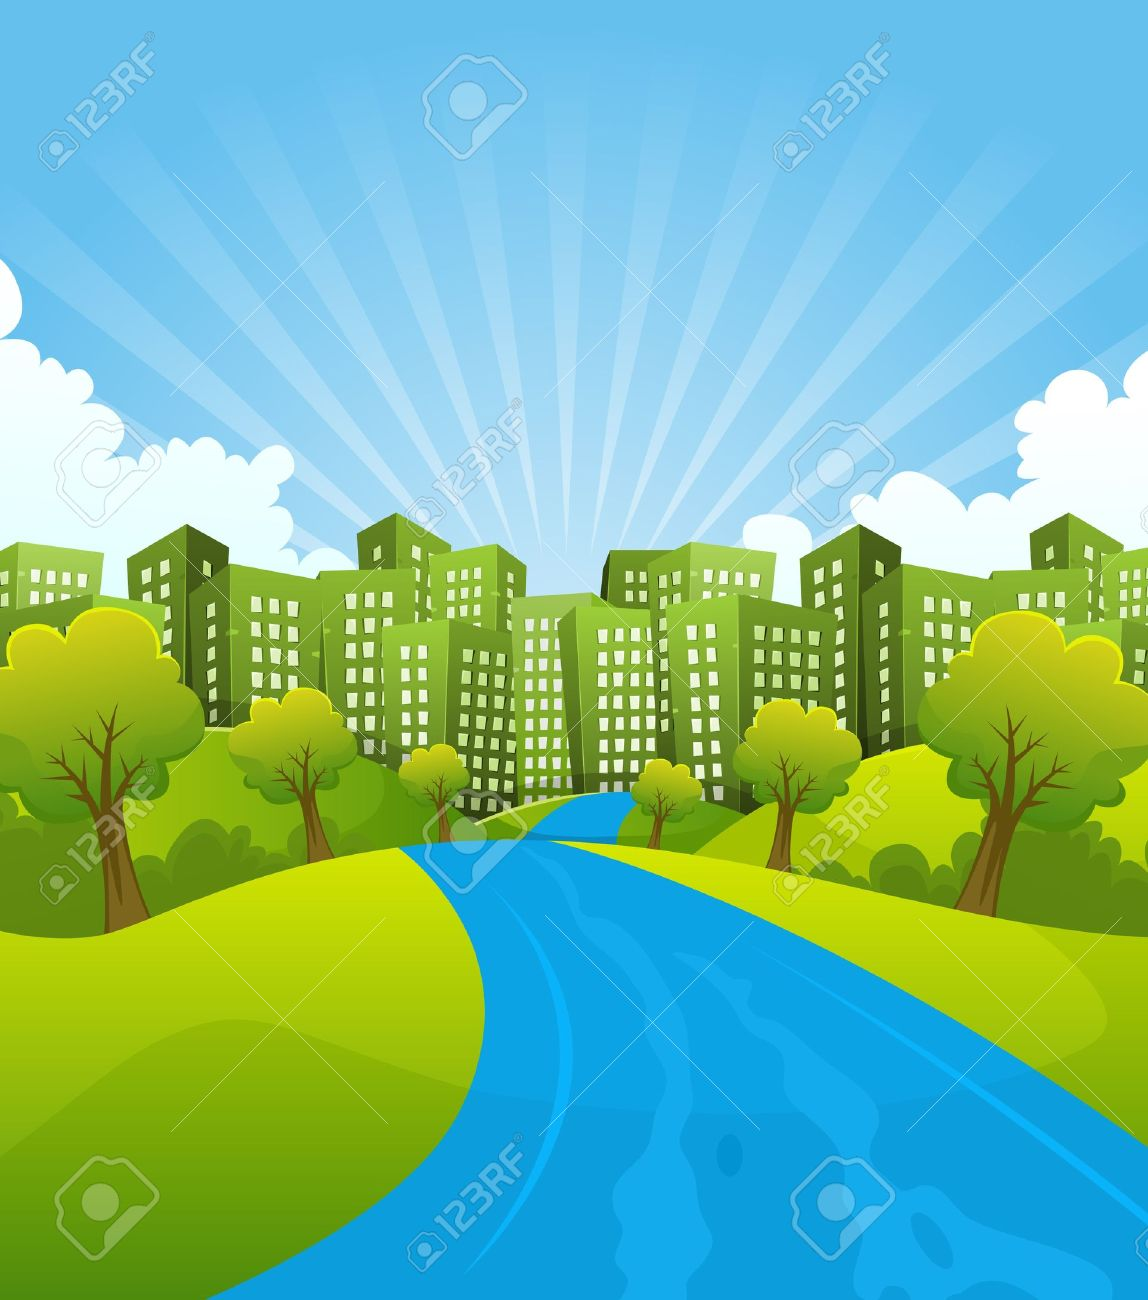 Illustration of a cartoon summer or spring country river going to green cityscape, for environment and ecology background - 17150461